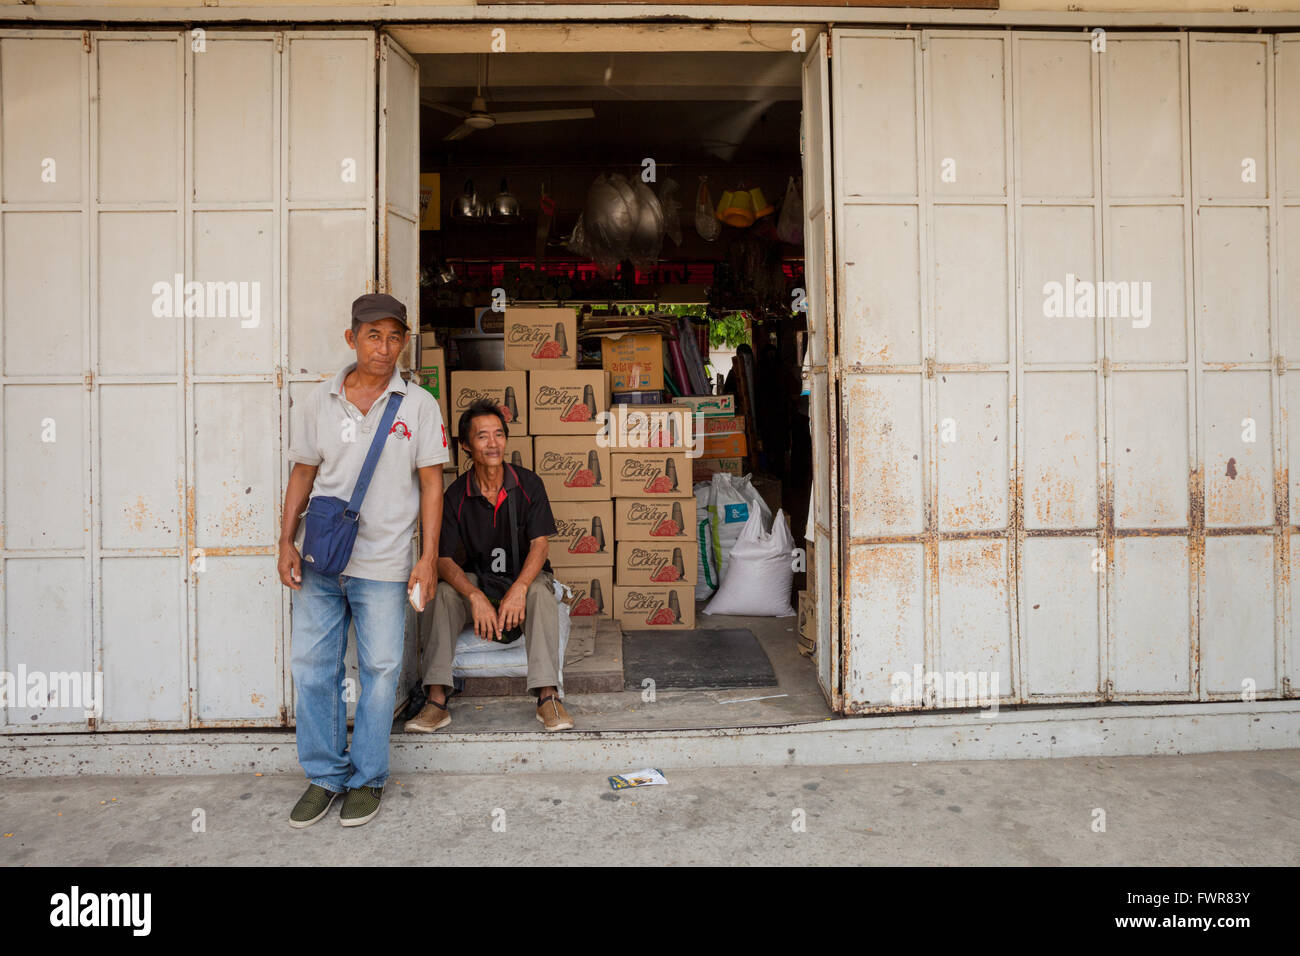 Two men standing by a shop entrance, Kota Marudu, Borneo Malaysia - Stock Image